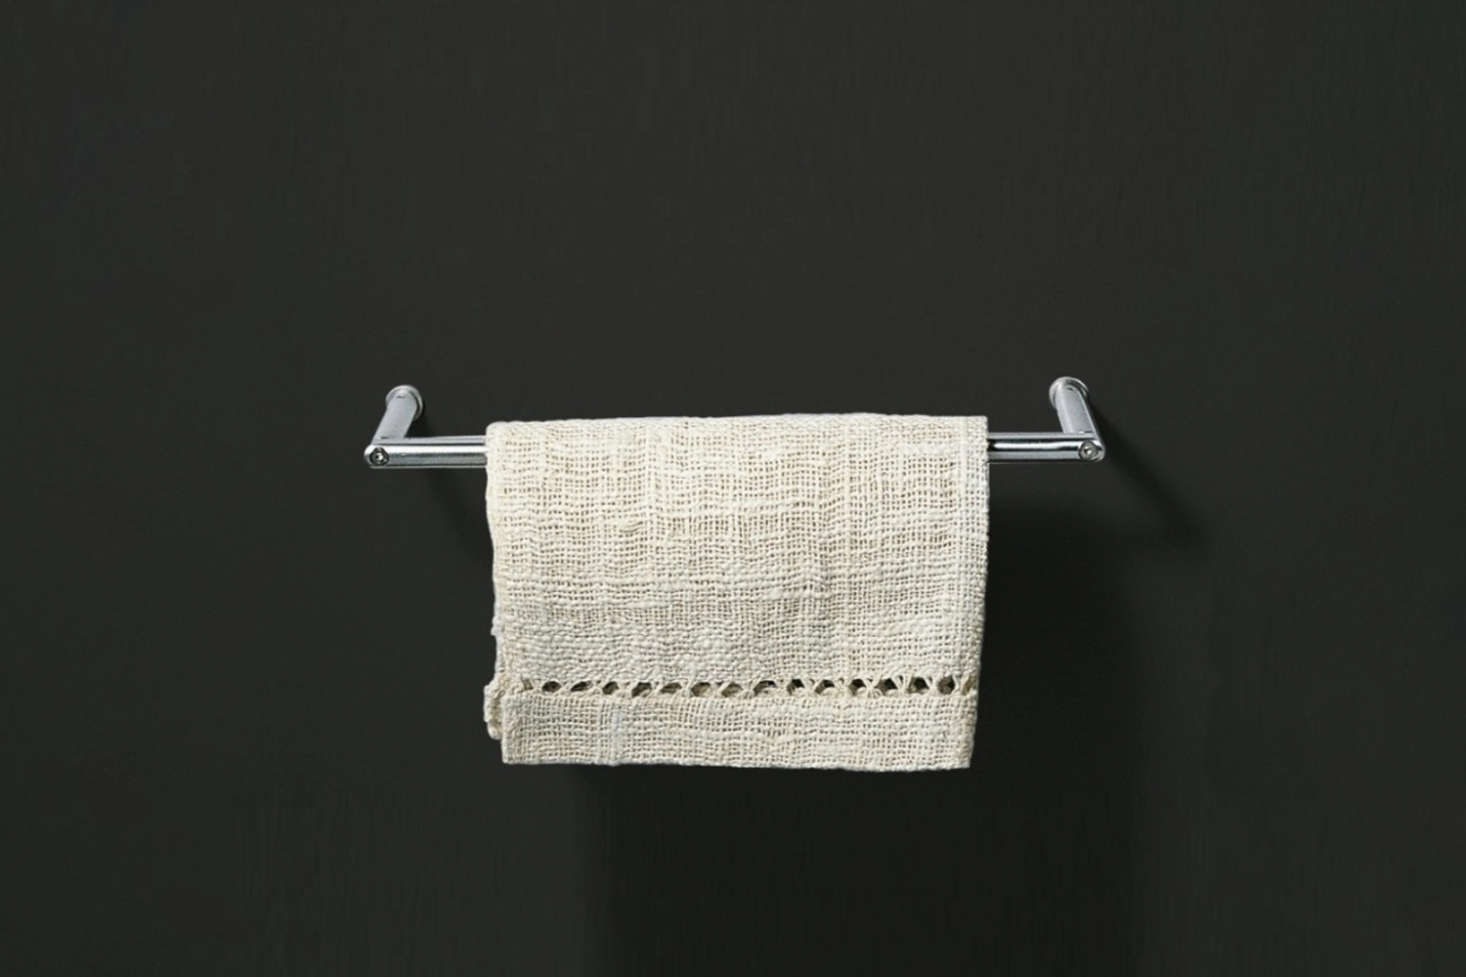 Desinged by Giulio Gianturco for Boffi, the Minimal Towel Holder is available at Milia Shop. Contact for price adn ordering information.